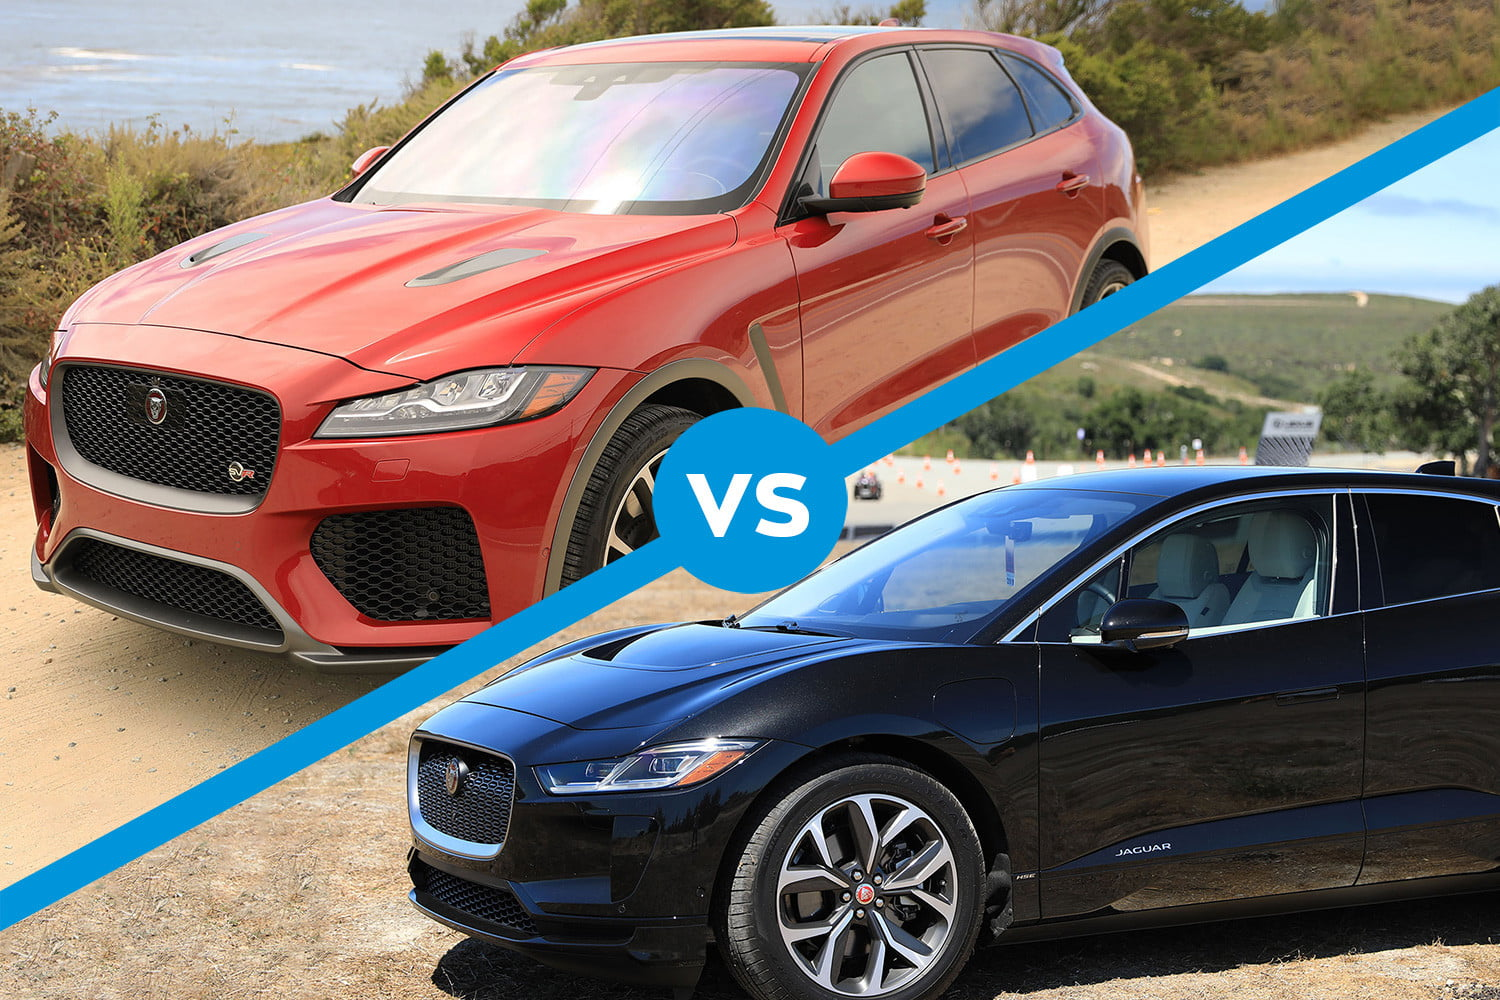 800 miles in an F-Pace SVR and 8 miles in an I-Pace shows Jaguar's split personality